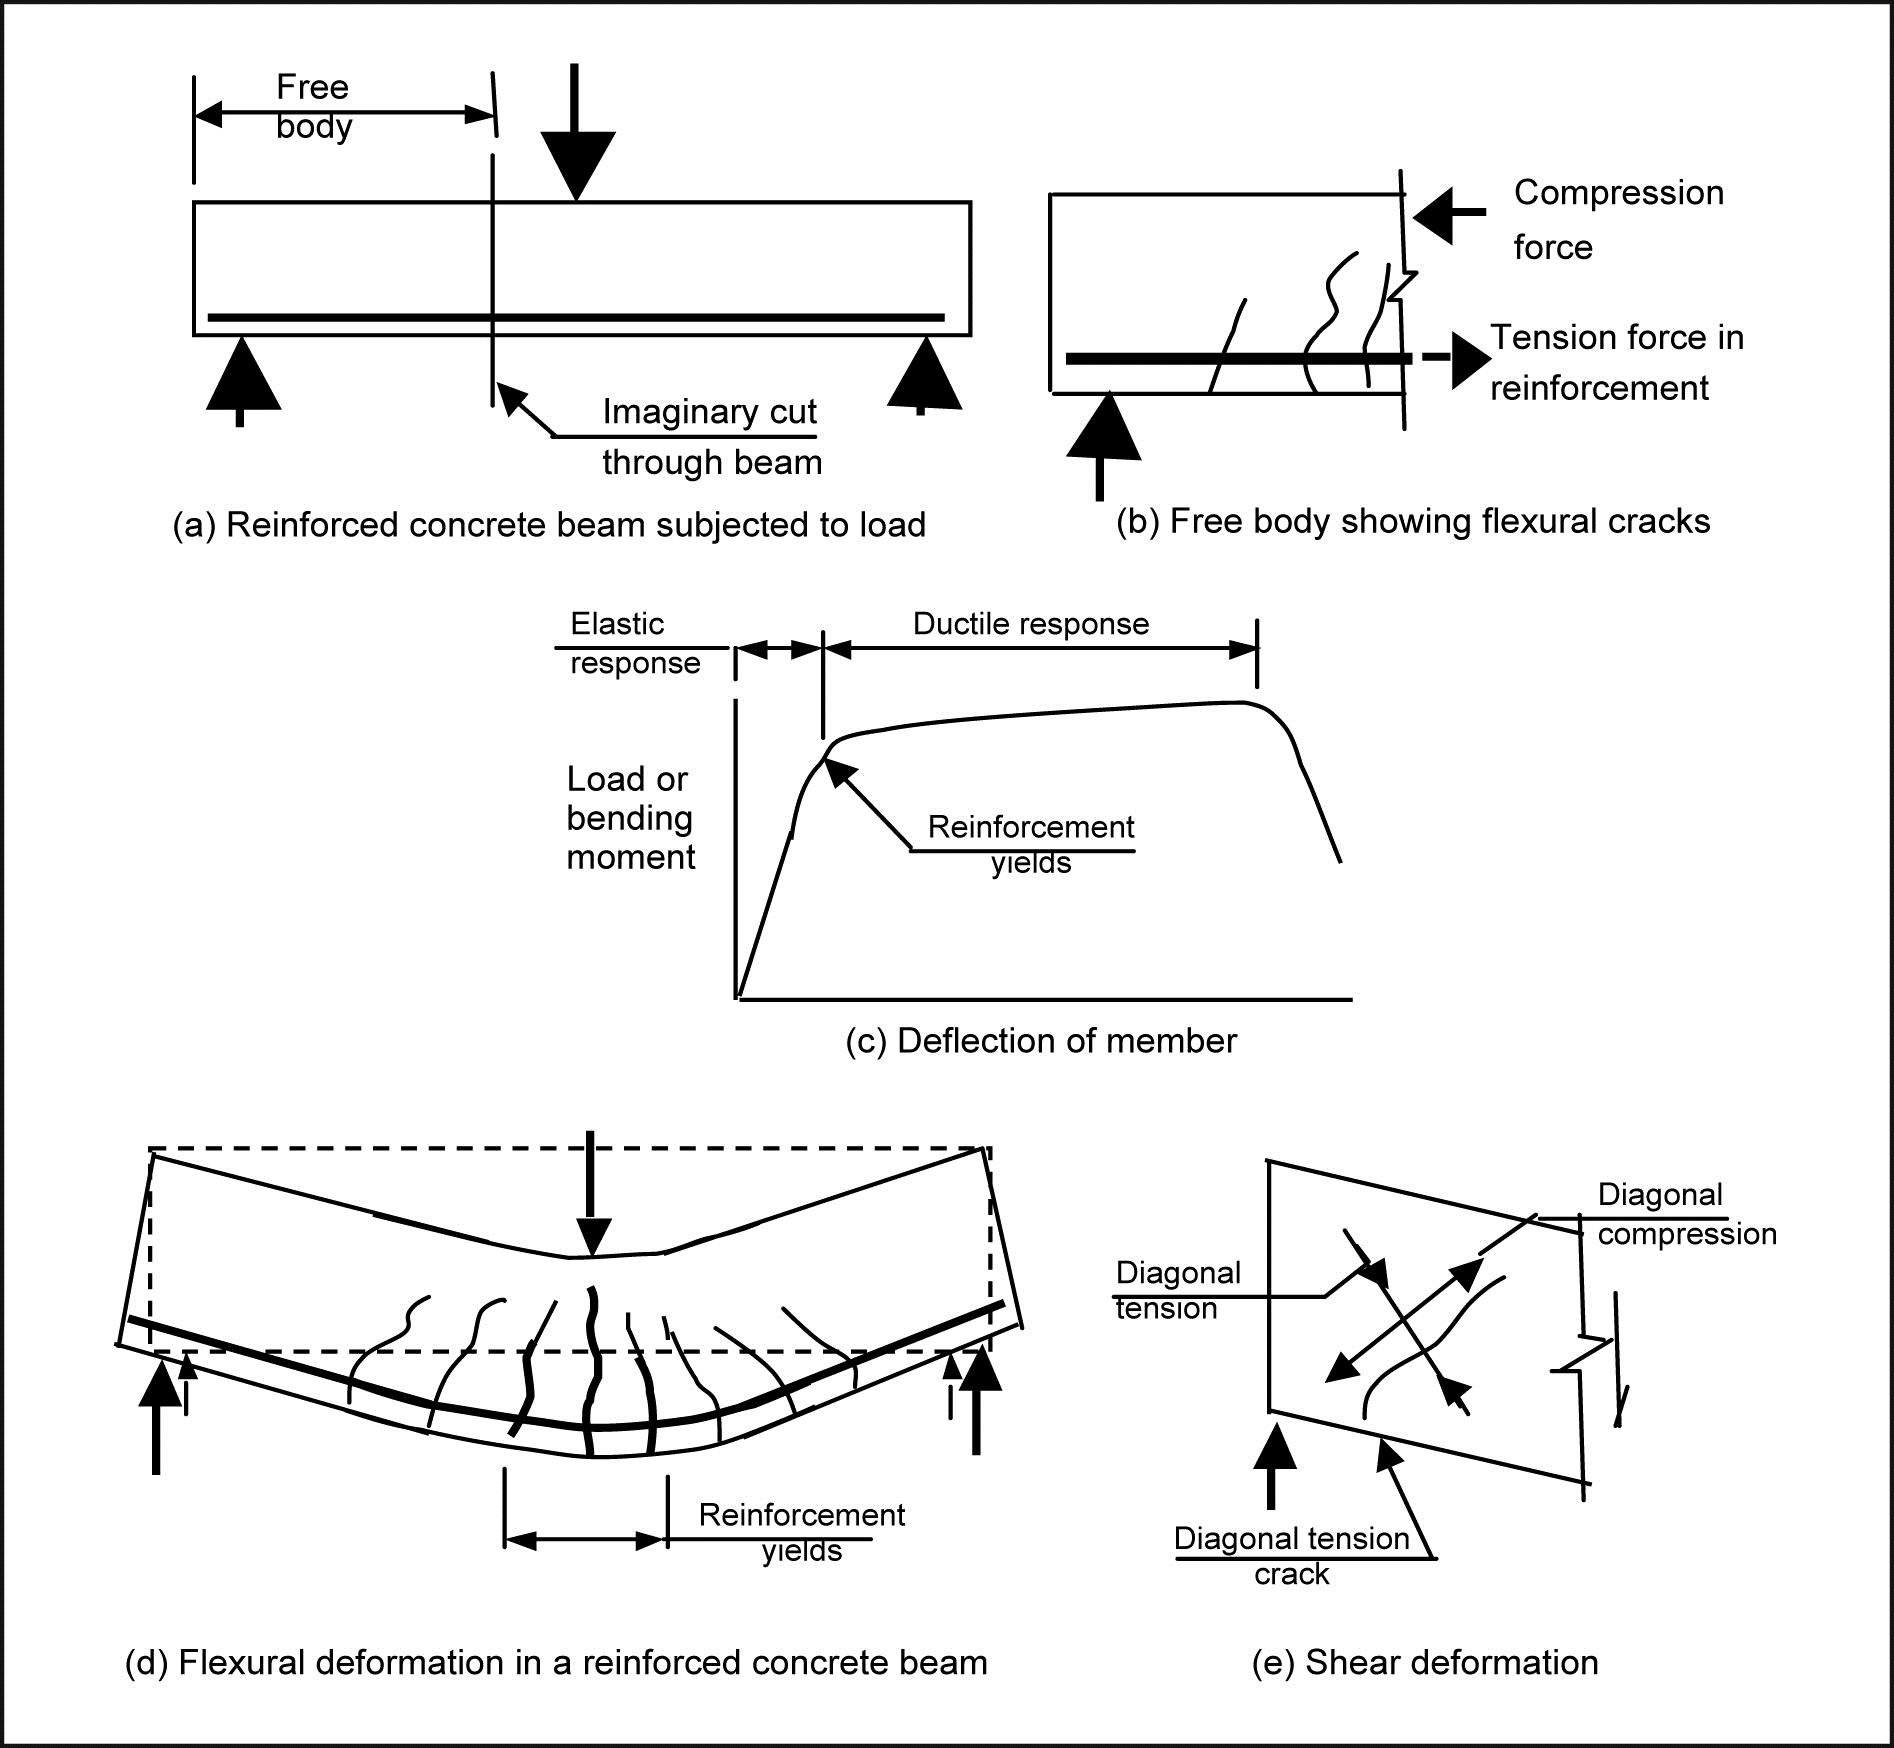 Interim Report Appendices Royal Commission Of Inquiry Into Beam Deflection Diagram Image